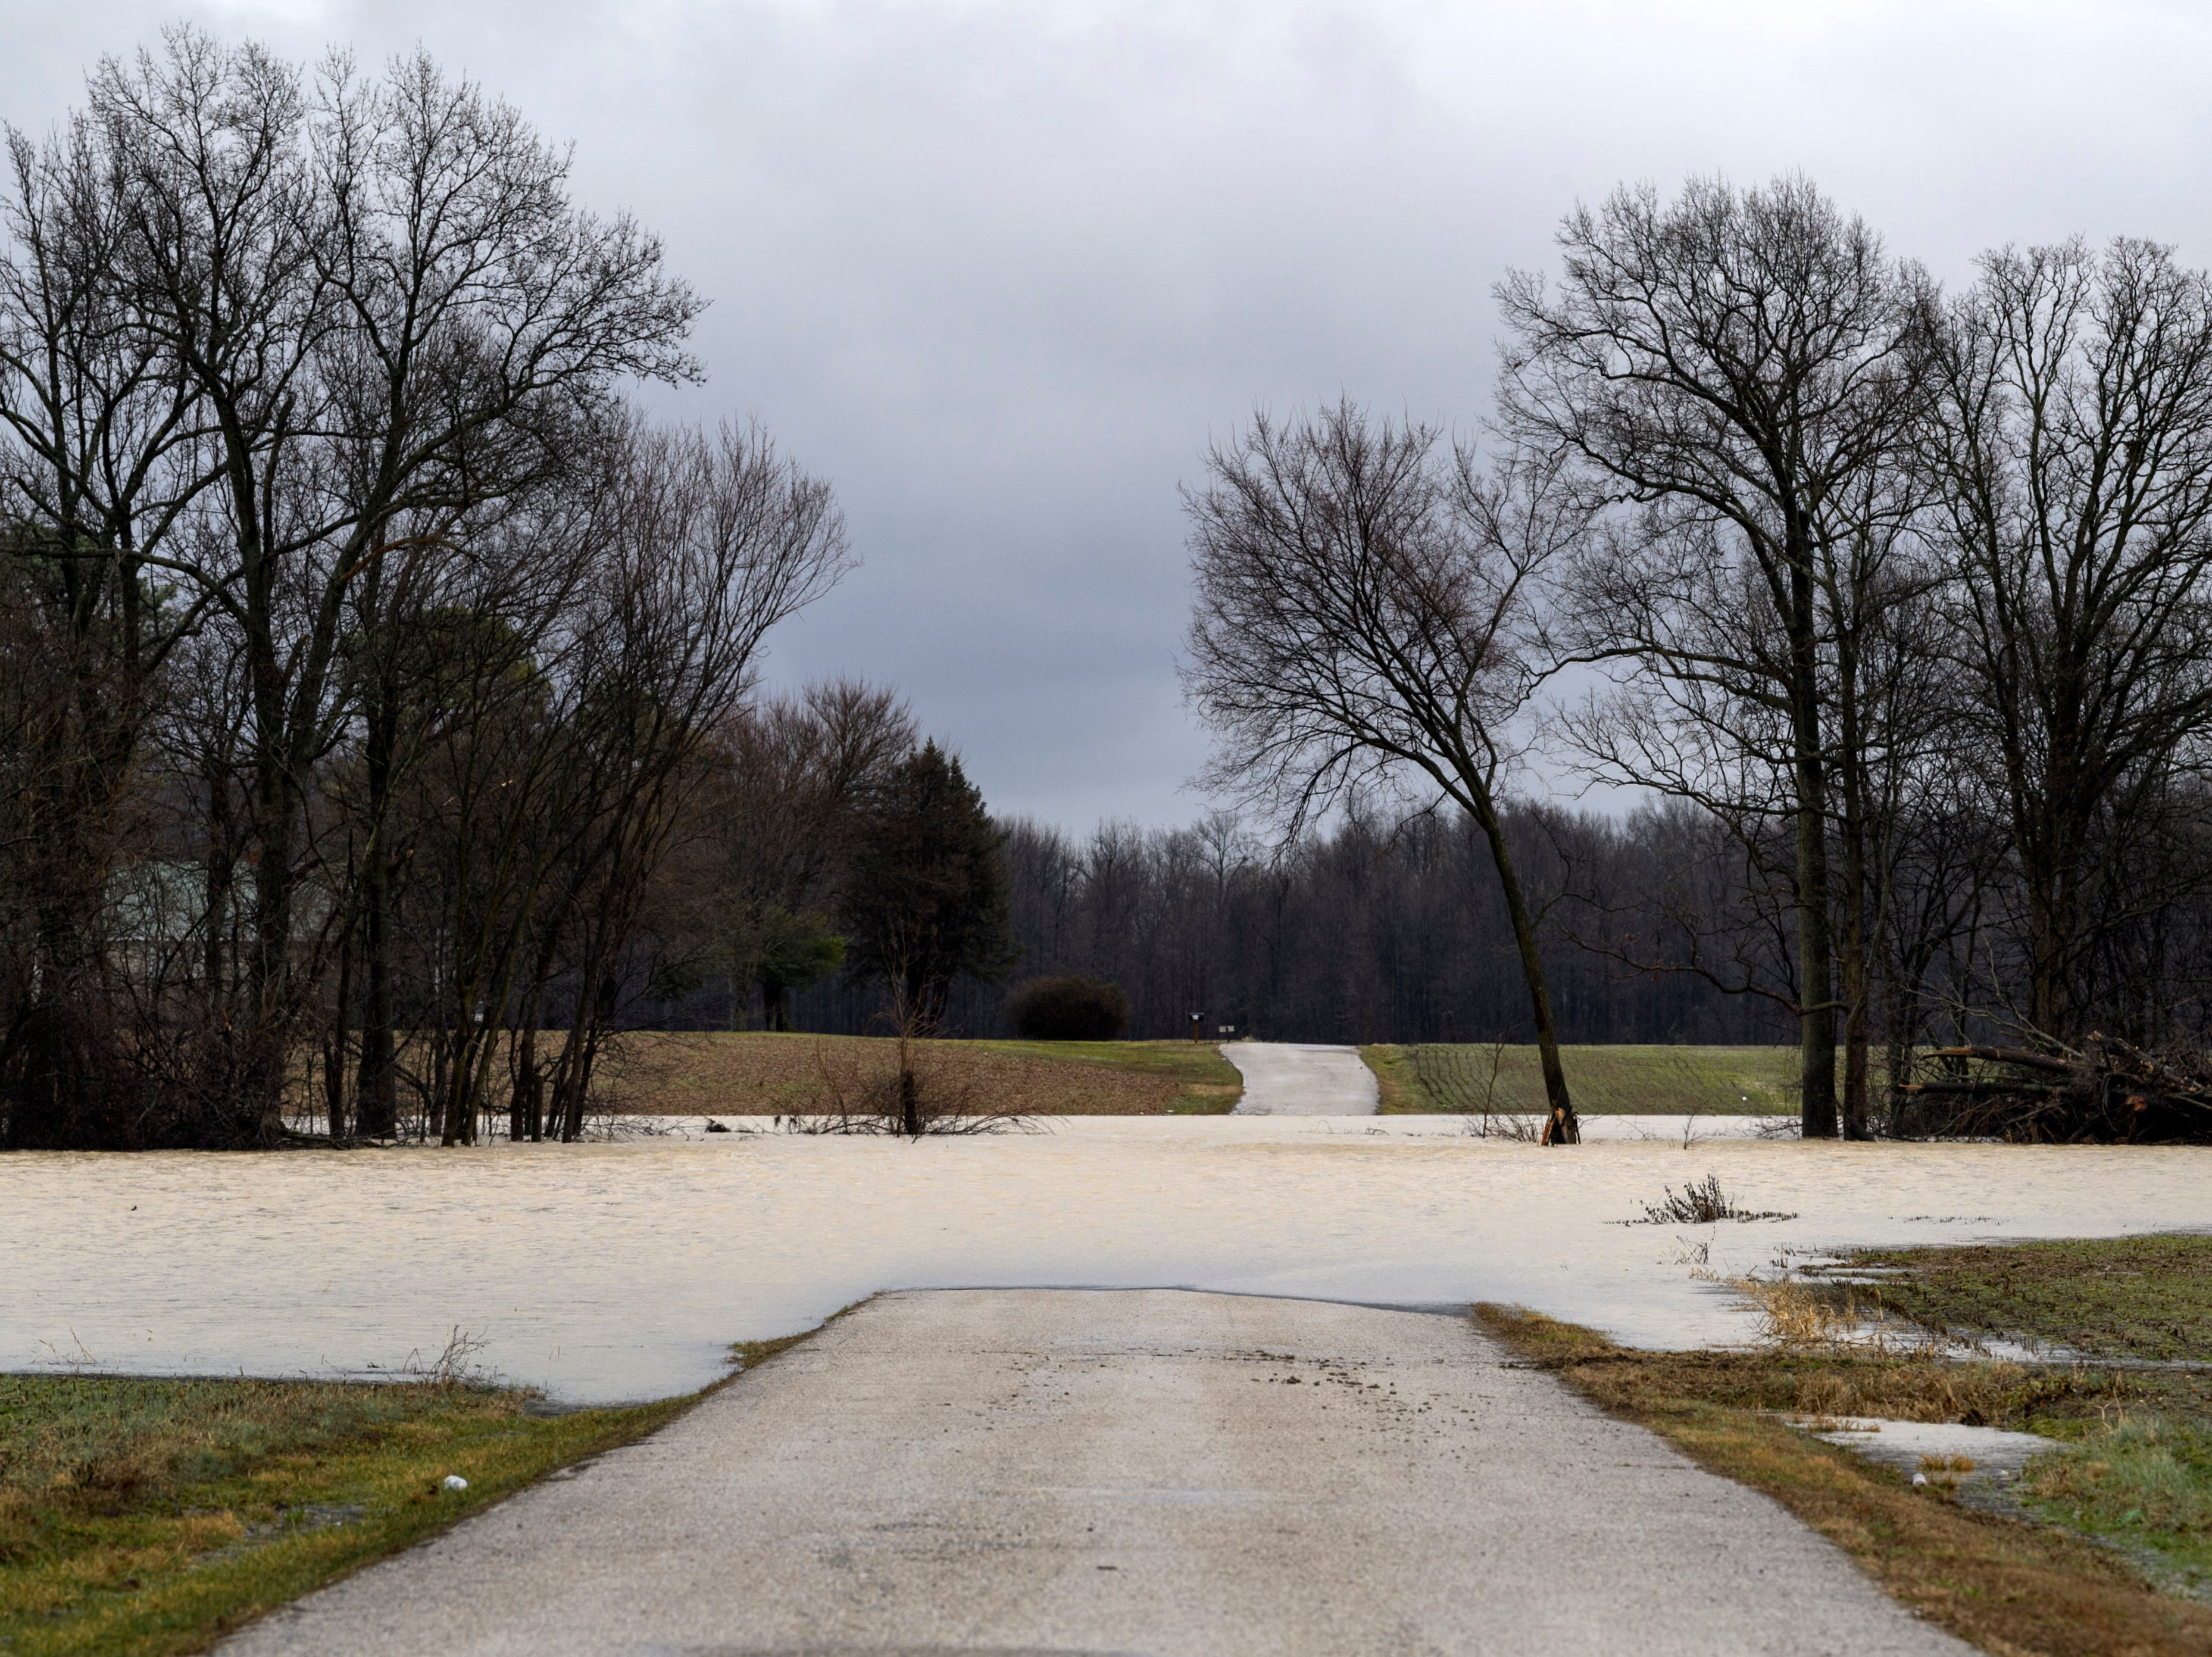 Water covers a section of East Pikes Landing Road near KY-811 in Reed, Ky., Tuesday, Feb. 12, 2019. As of early Tuesday afternoon, the Ohio River at Evansville was measured to be 41 feet, one foot below flood stage, and the current forecast calls for the river to crest on Sunday at close to 44 feet.